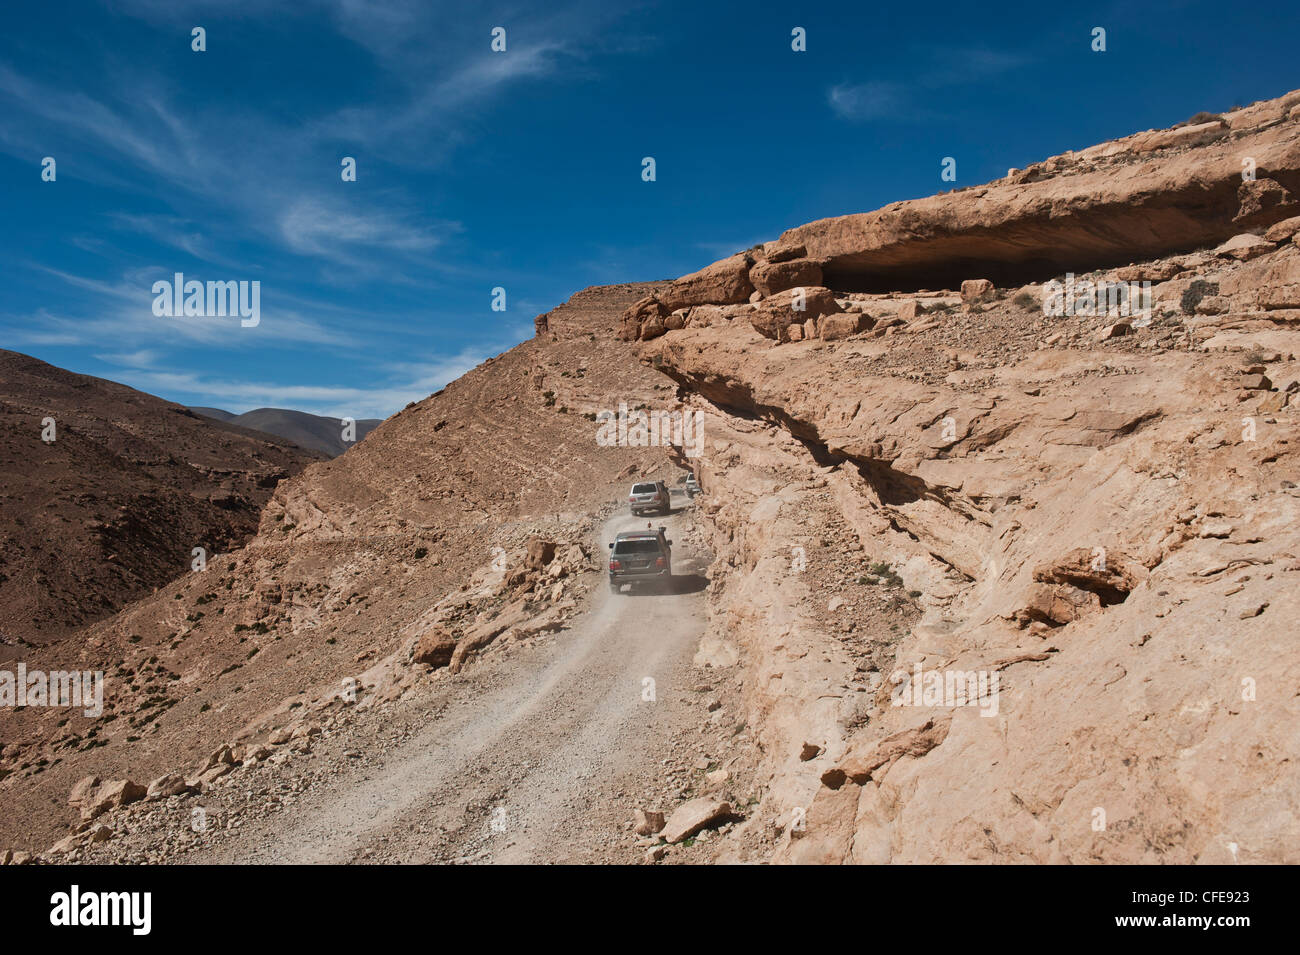 4x4 wheel drive car in the Todra valley, Atlas Mountains, Morocco. - Stock Image